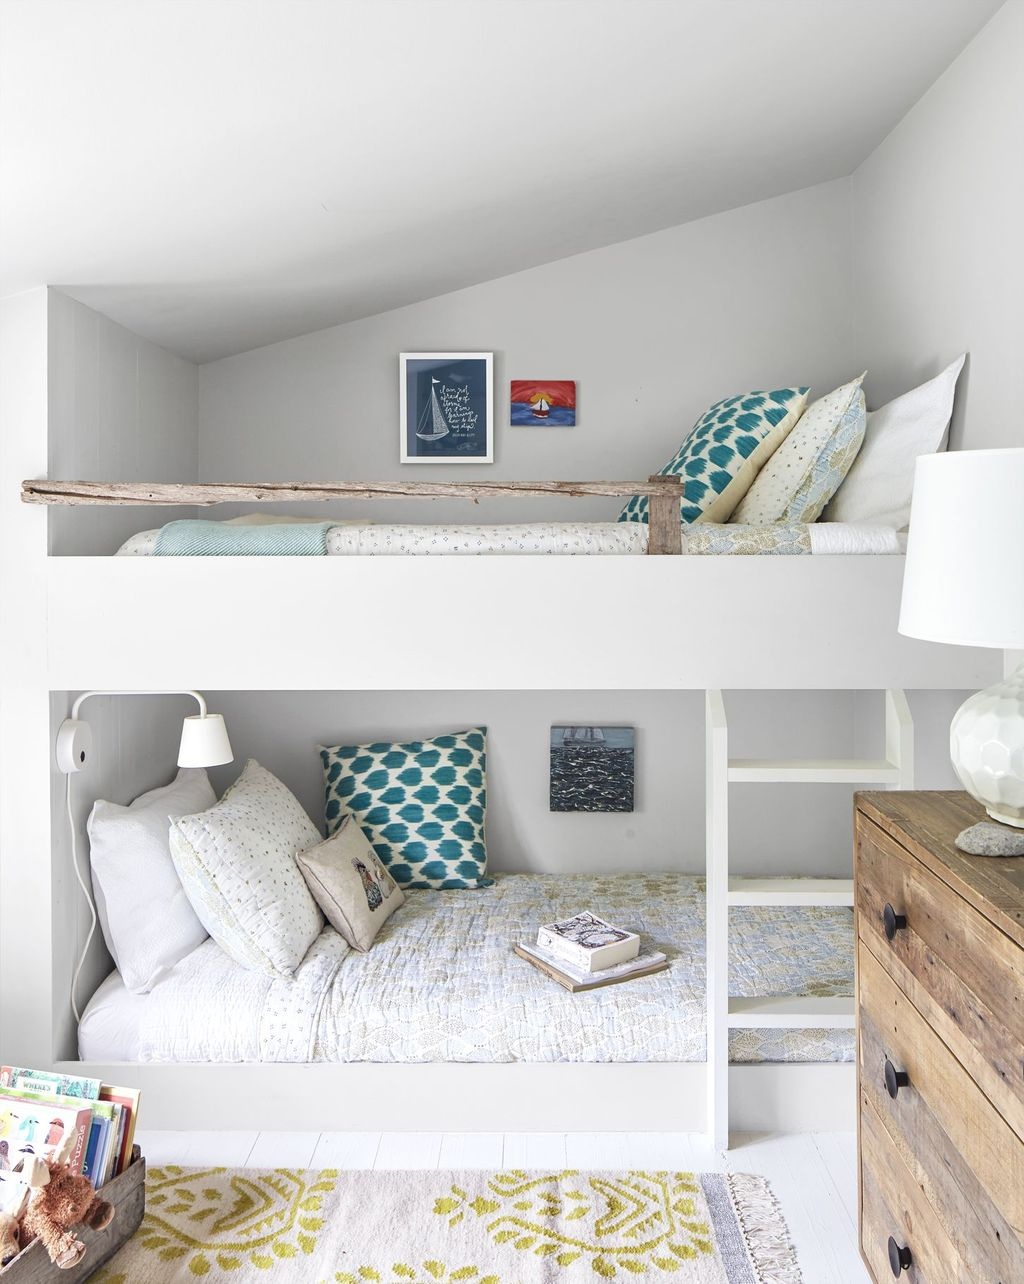 Fascinating Bunk Beds Design Ideas For Small Room 23